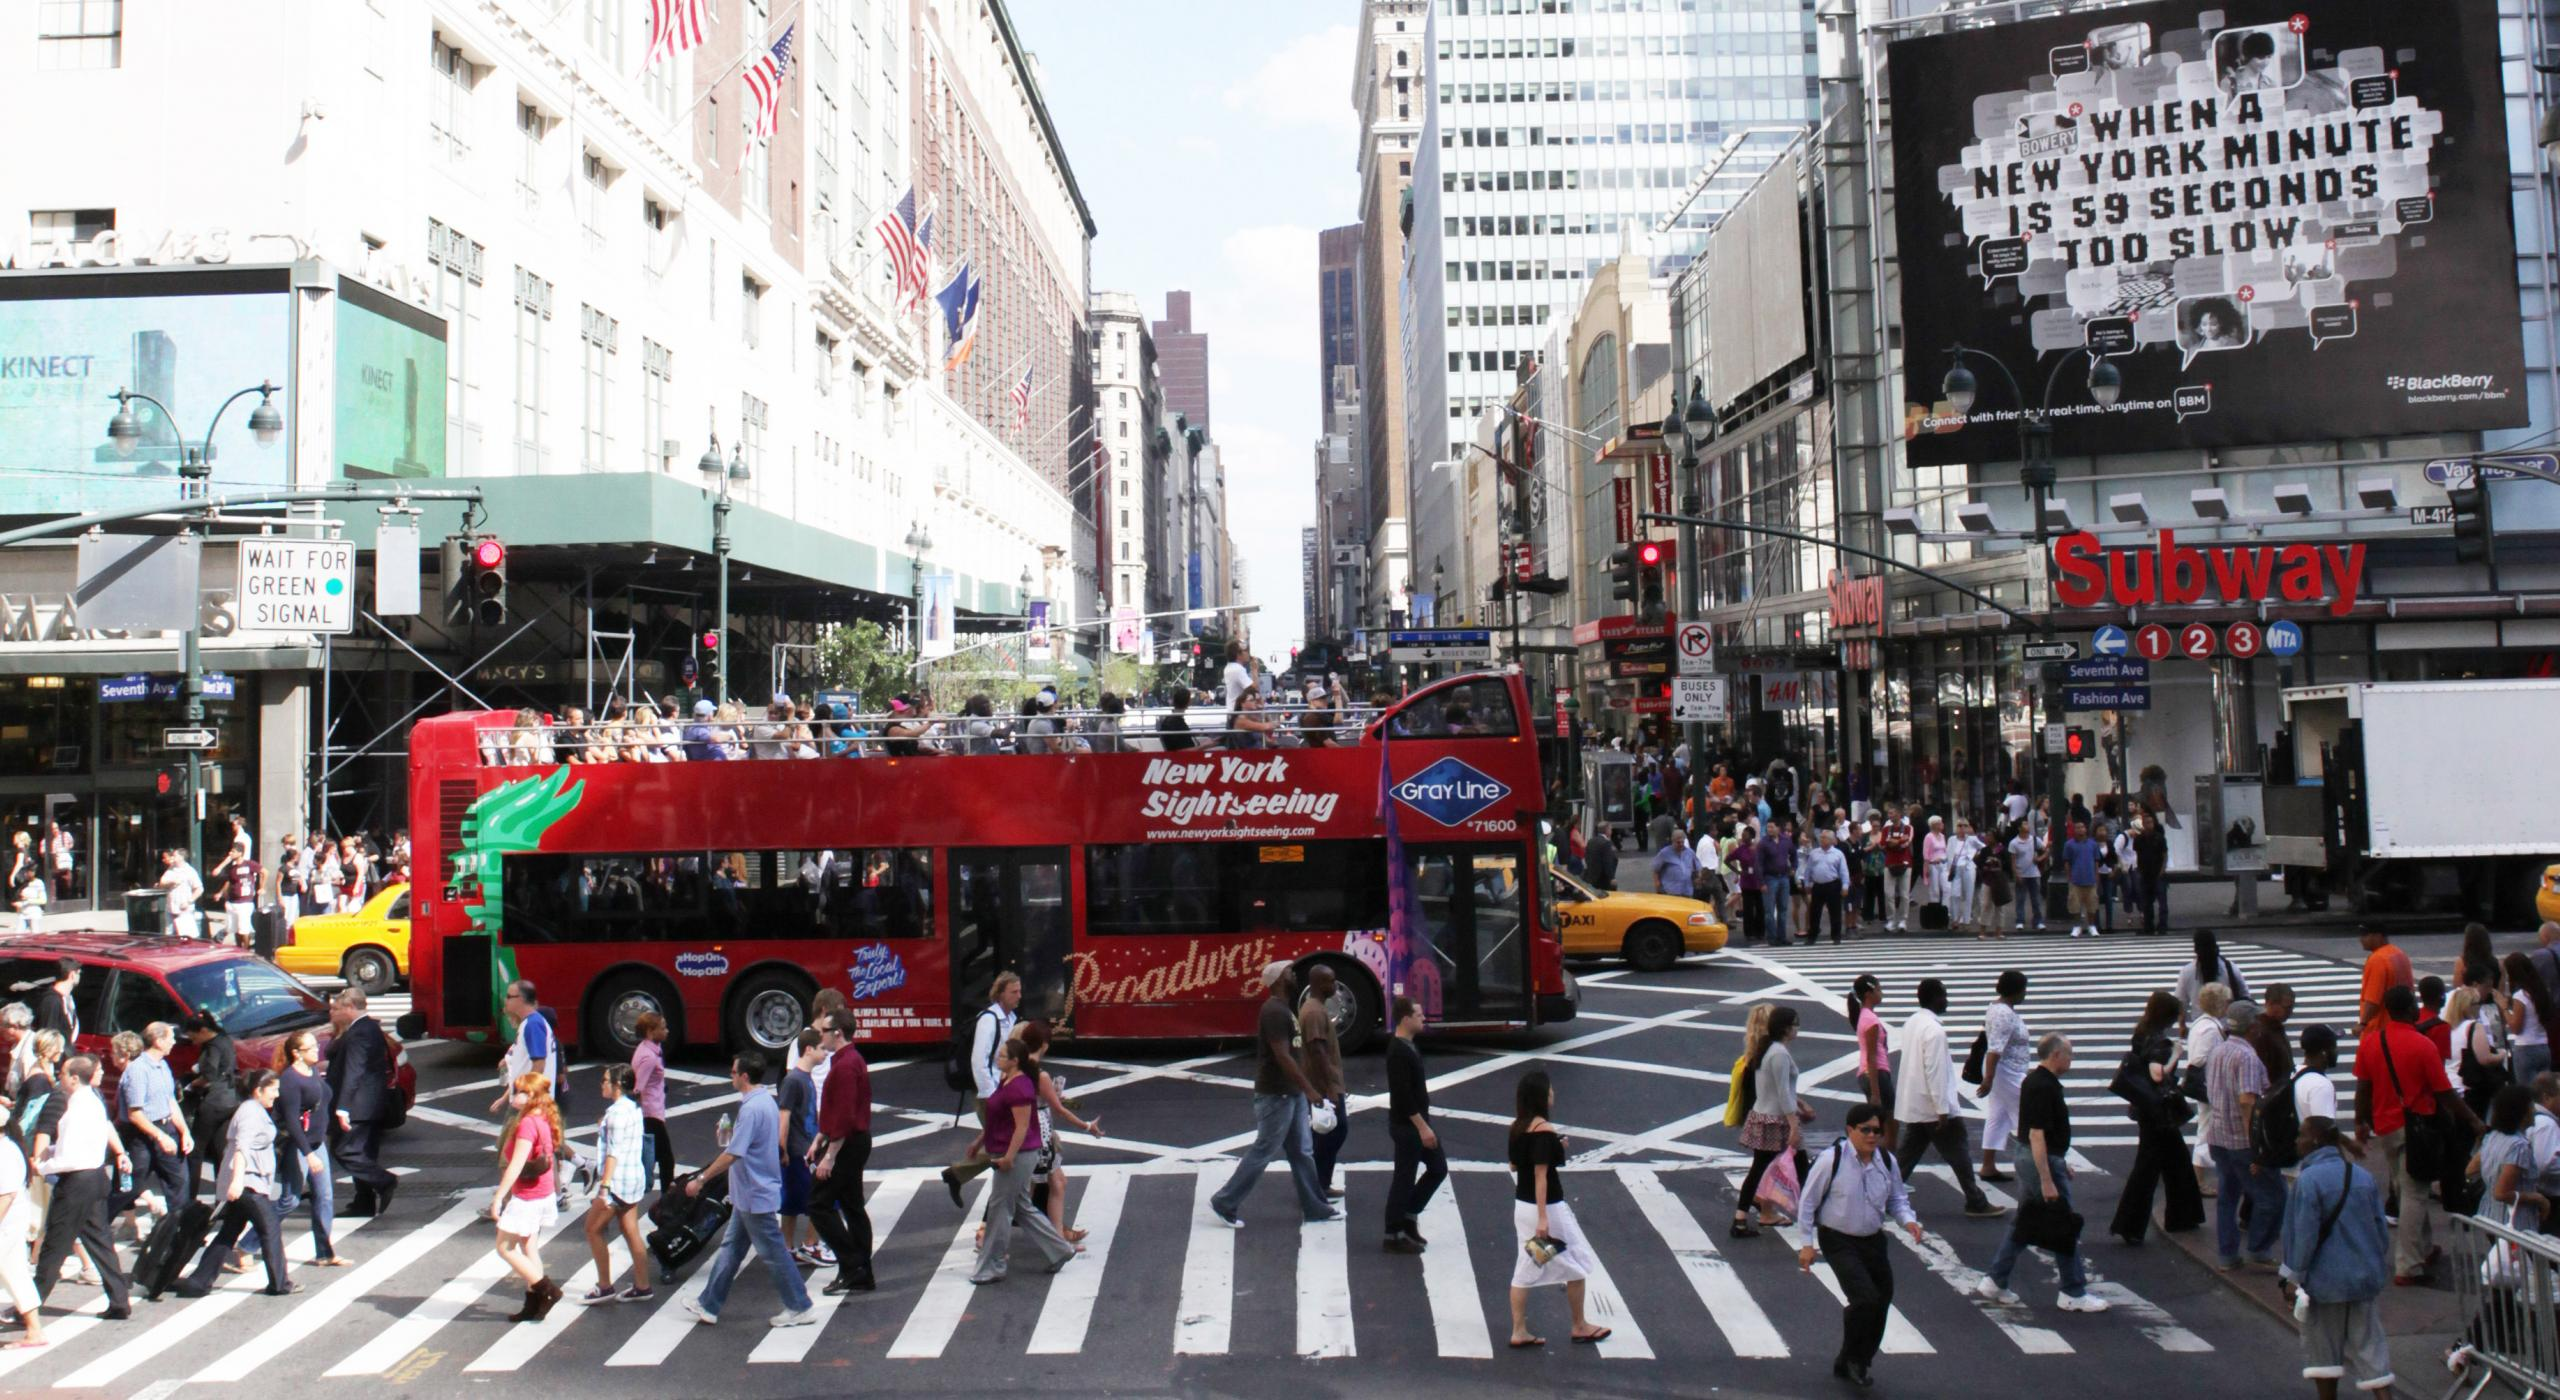 city tours & packages - visit the usa l official usa